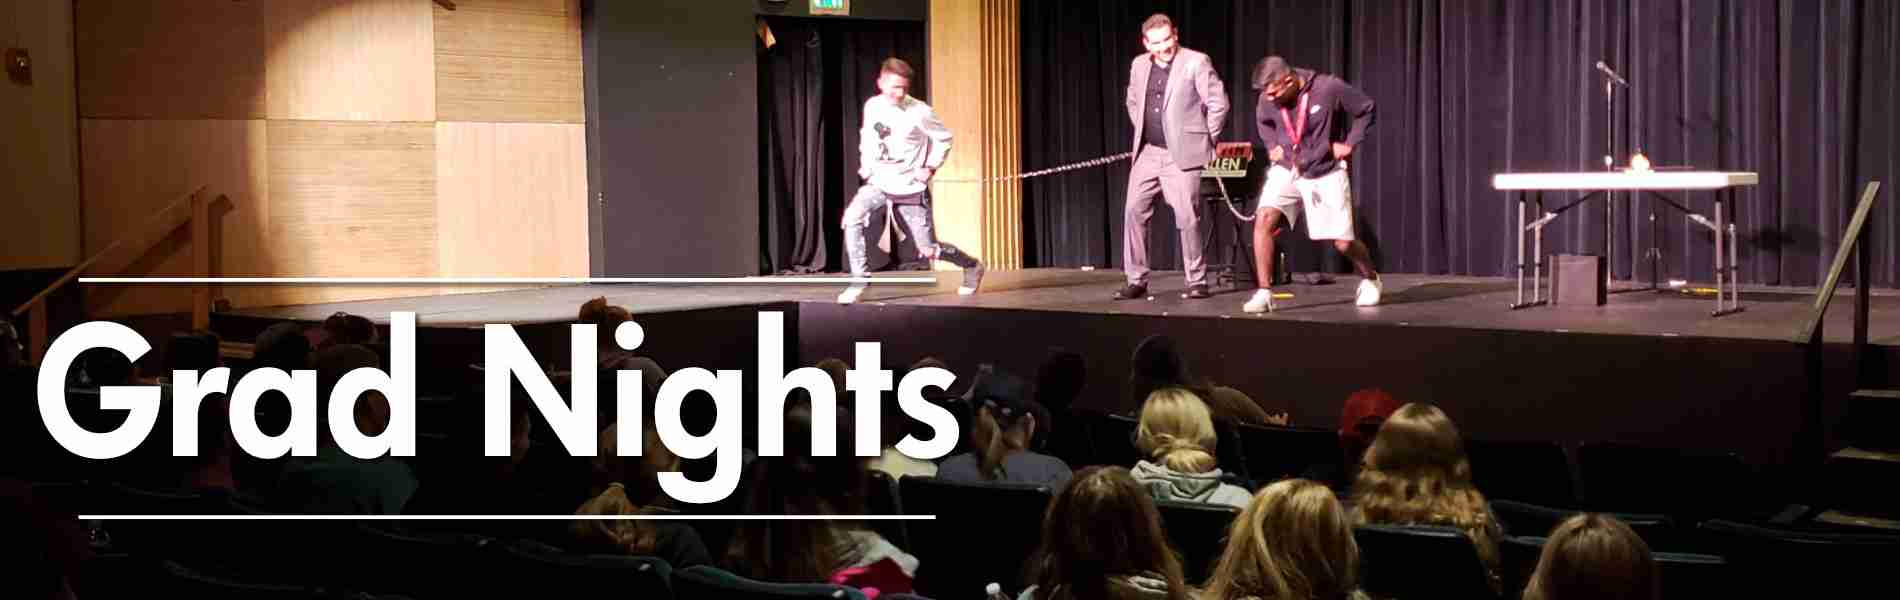 Comedy Magician Grad Night Entertainment header pic